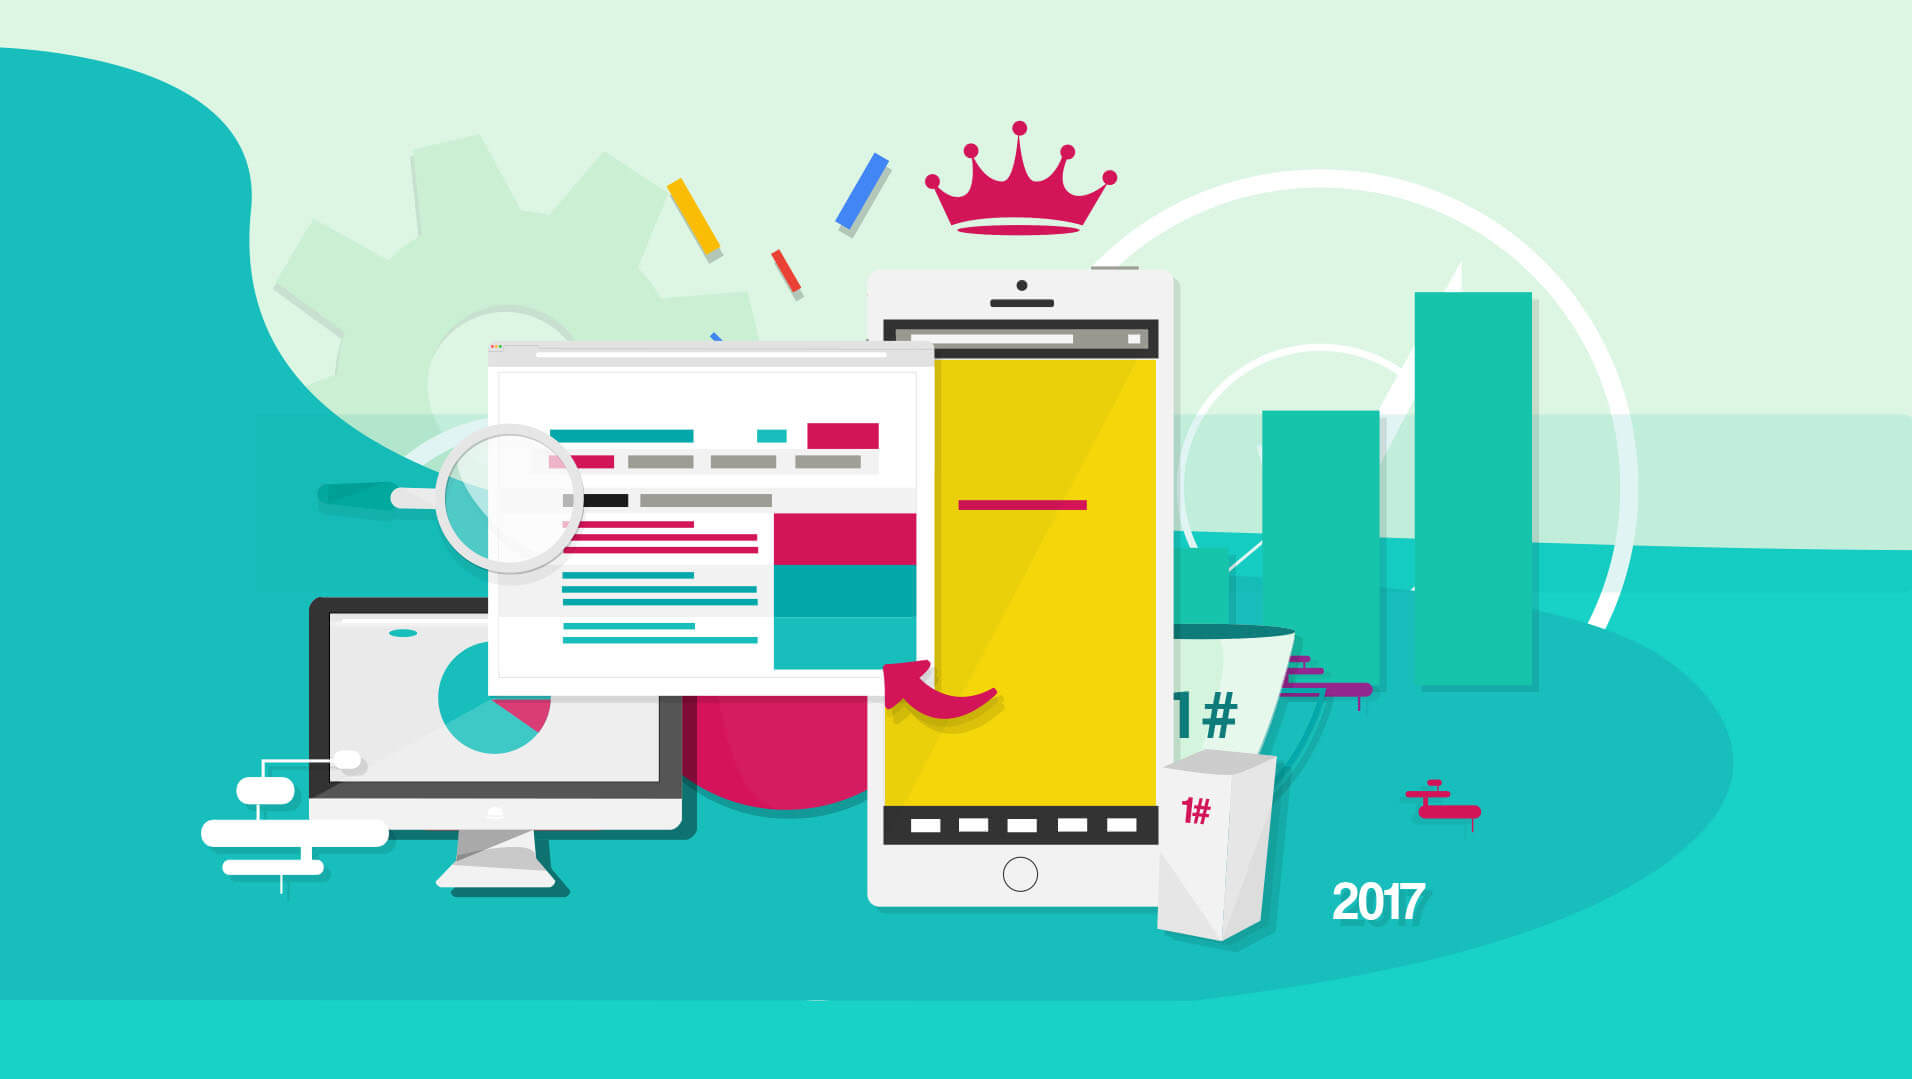 seo-in-2017-mobile-optimisation-as-a-competitive-advantage